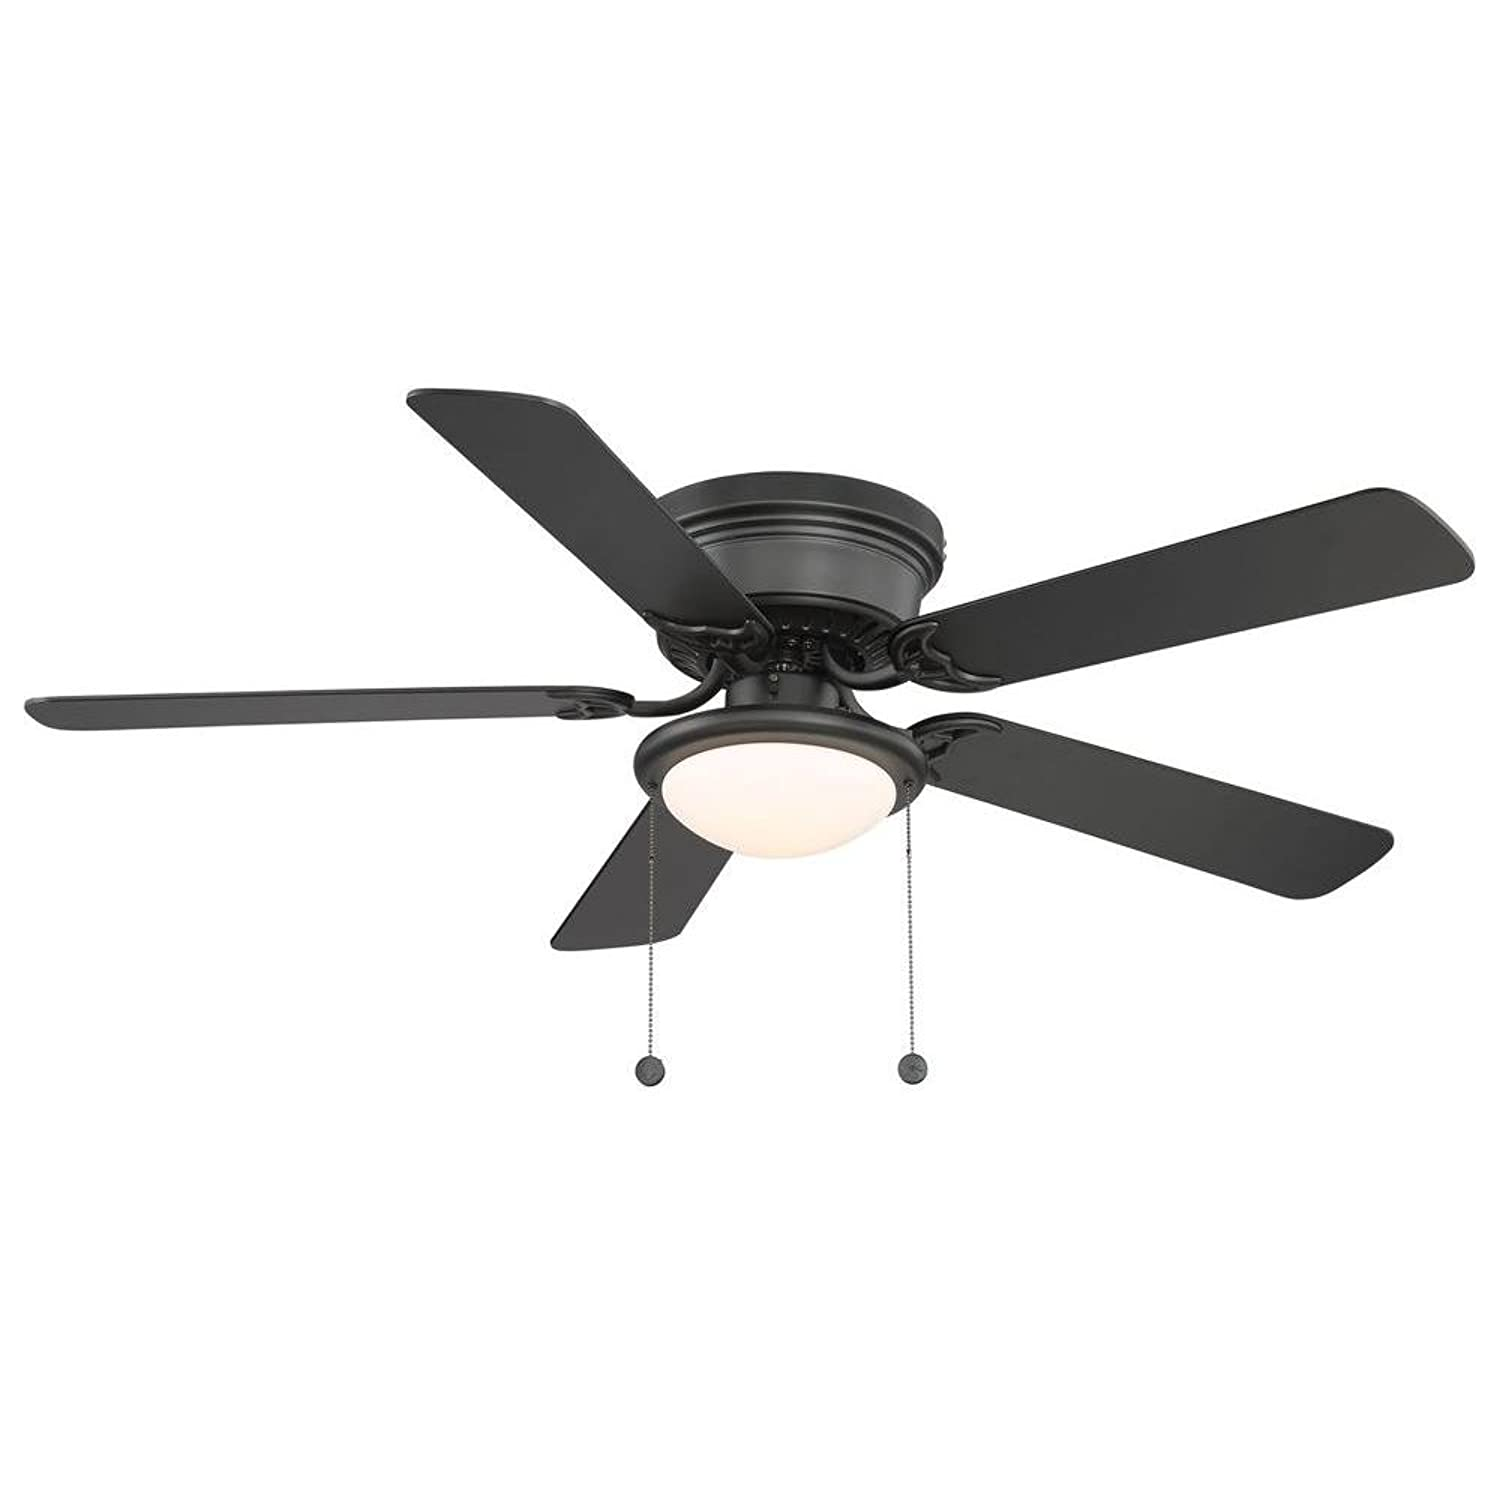 Amazon.com: Hampton Bay Hugger 52 In. Black Ceiling Fan   Black    Reversable Blades: Clothing